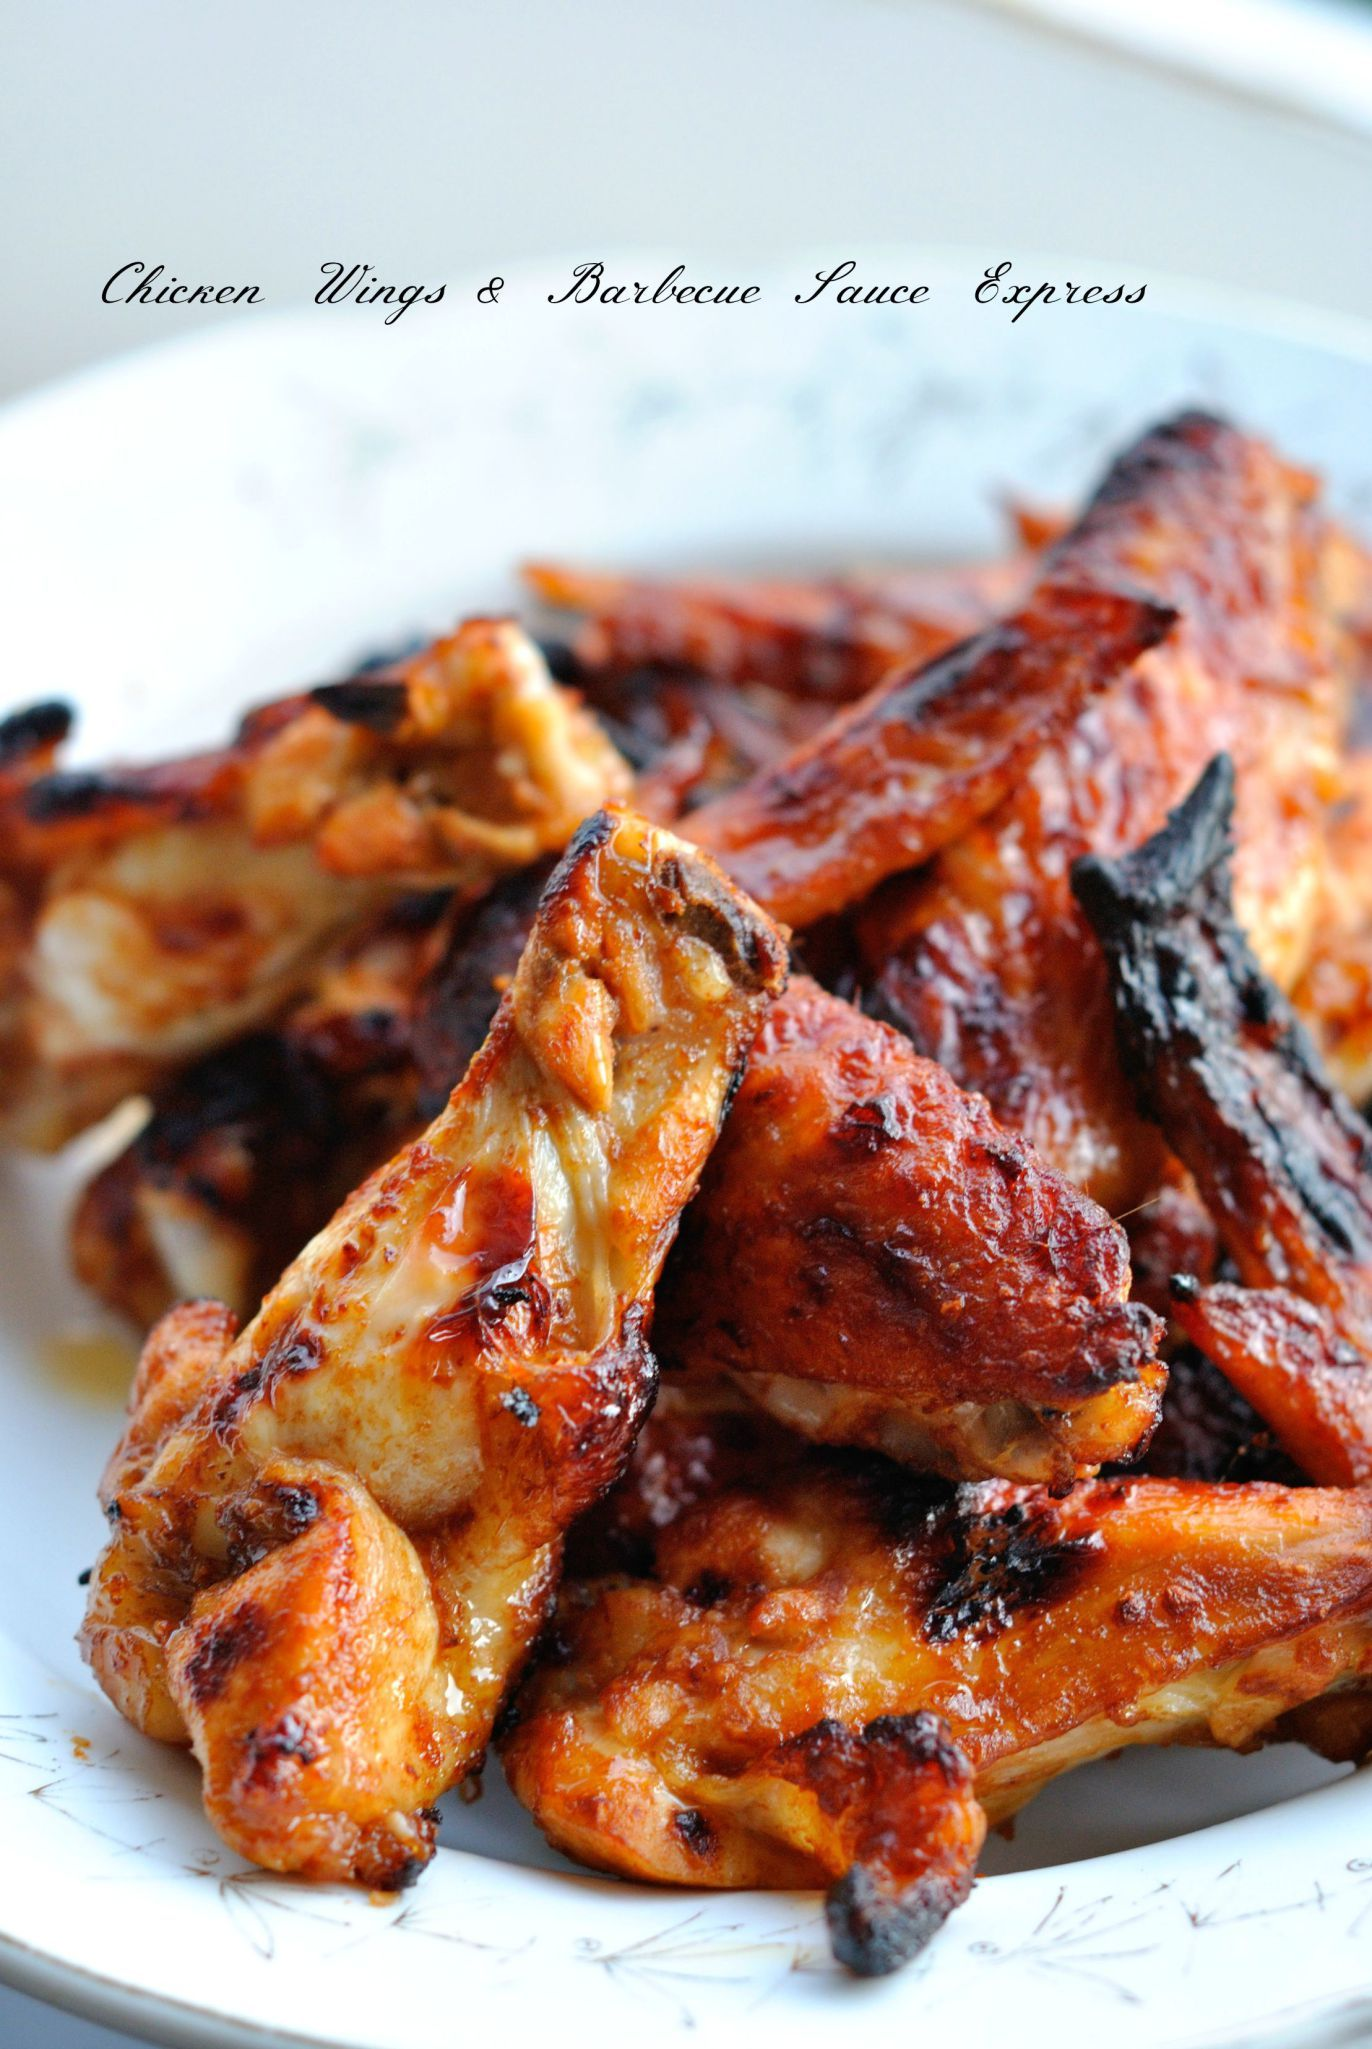 Chicken Wings & Barbecue Sauce Express 3